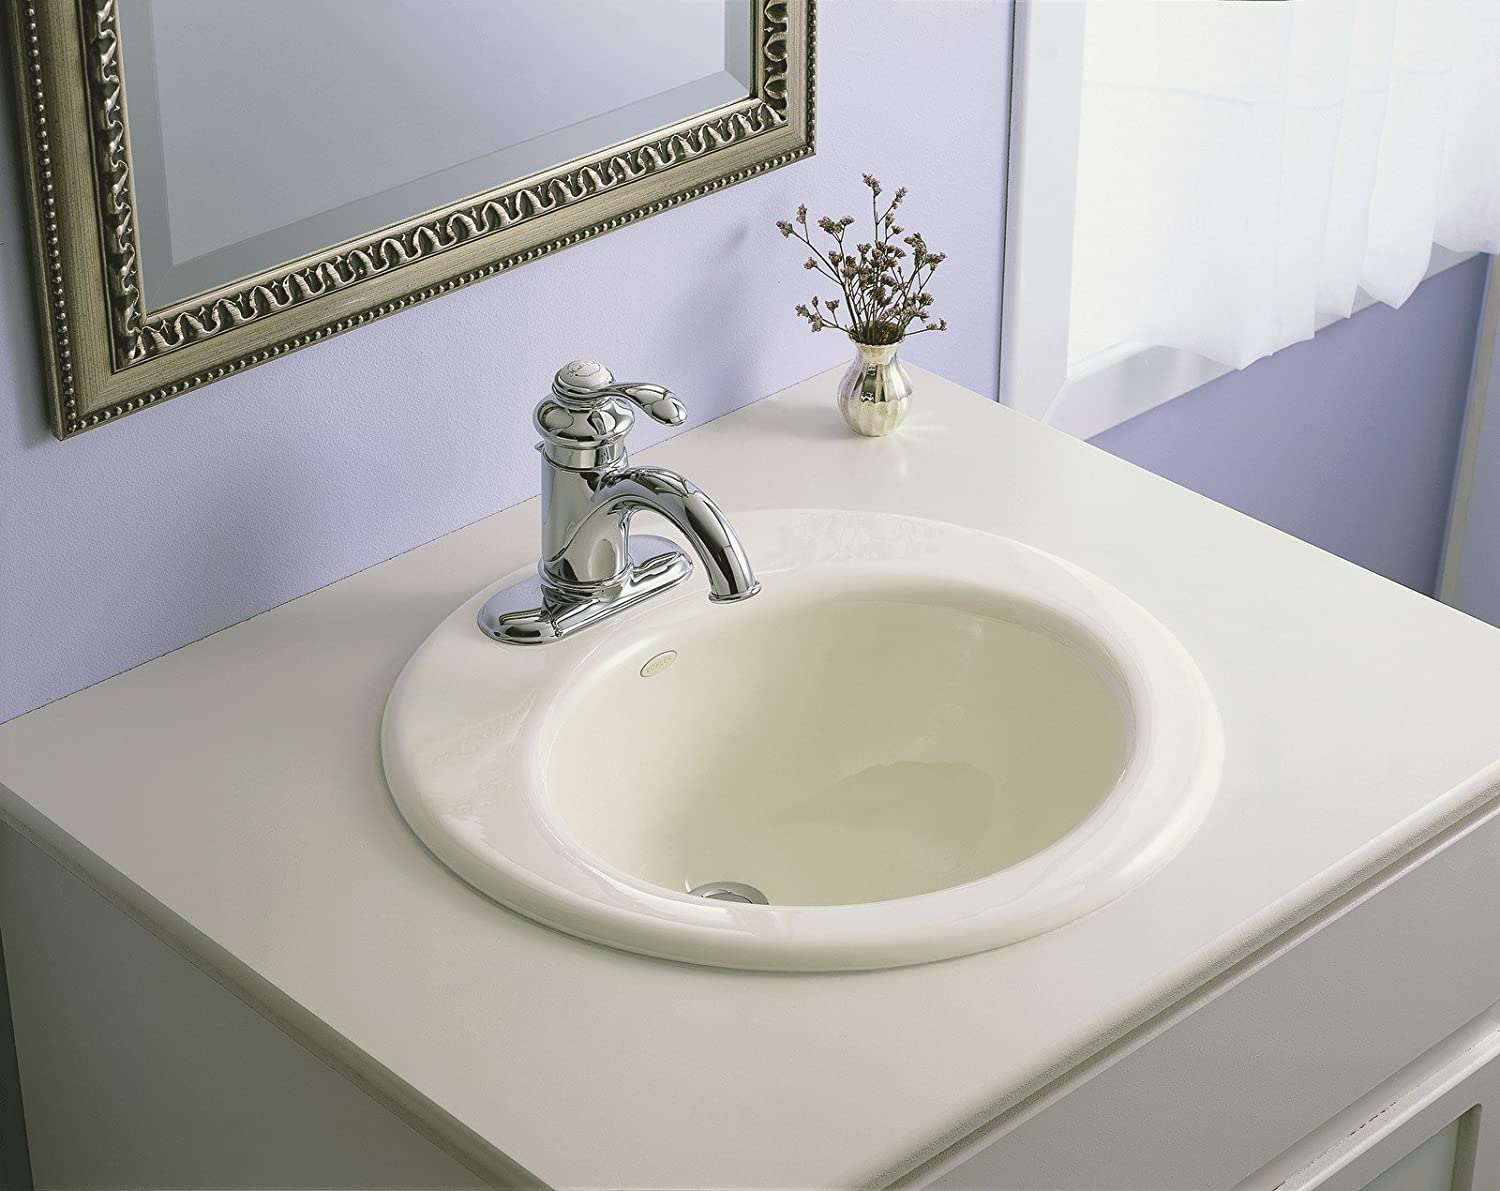 Etonnant KOHLER K 12181 CP Fairfax 4 In. Centerset Bathroom Sink Faucet With Single  Lever Handle, Polished Chrome   Touch On Bathroom Sink Faucets   Amazon.com